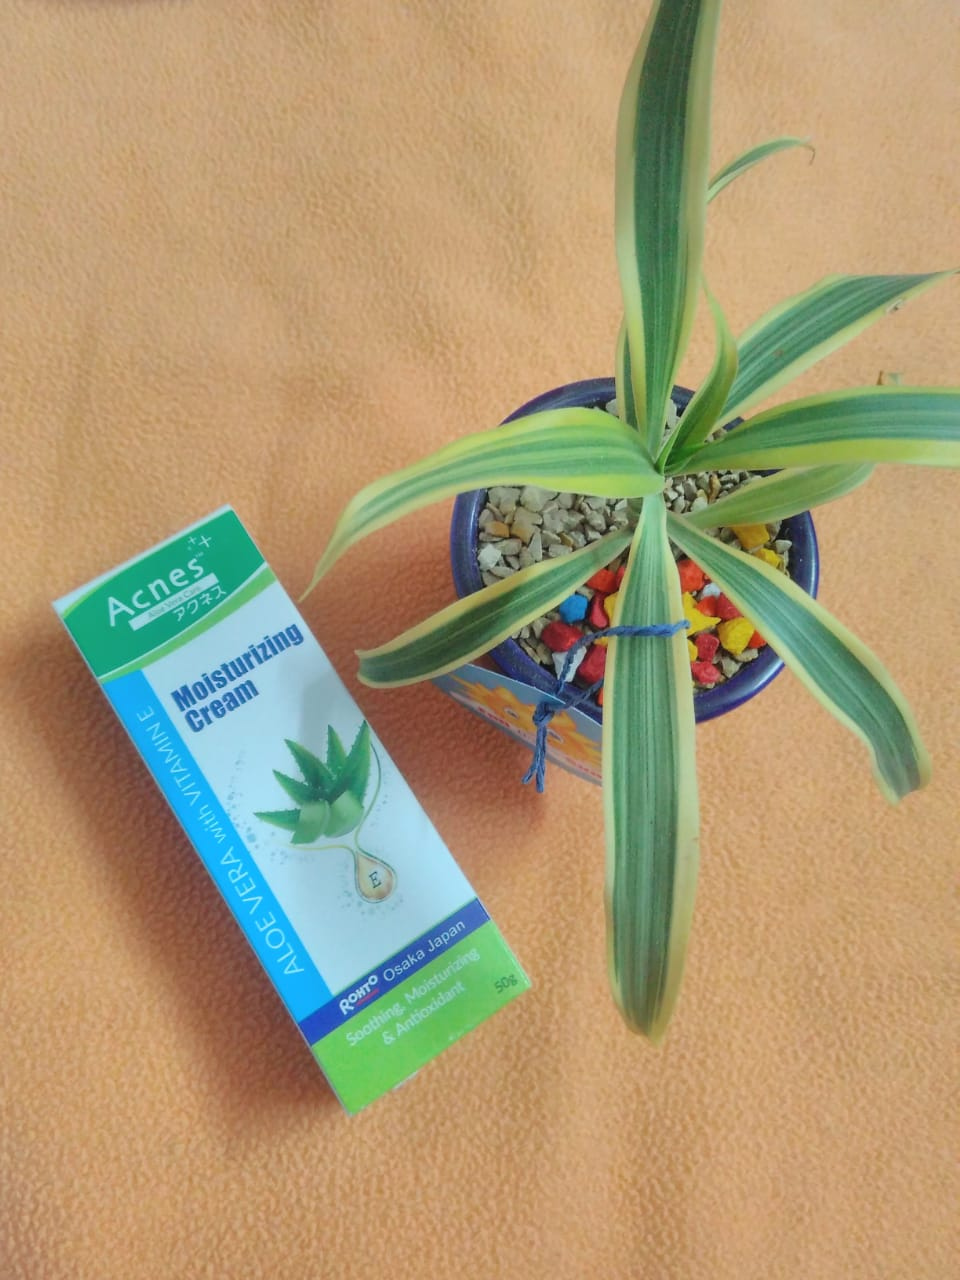 Acnes Aloe Vera With Vitamin E Moisturizing Cream-Makes skin healthy-By kalpana__vlog